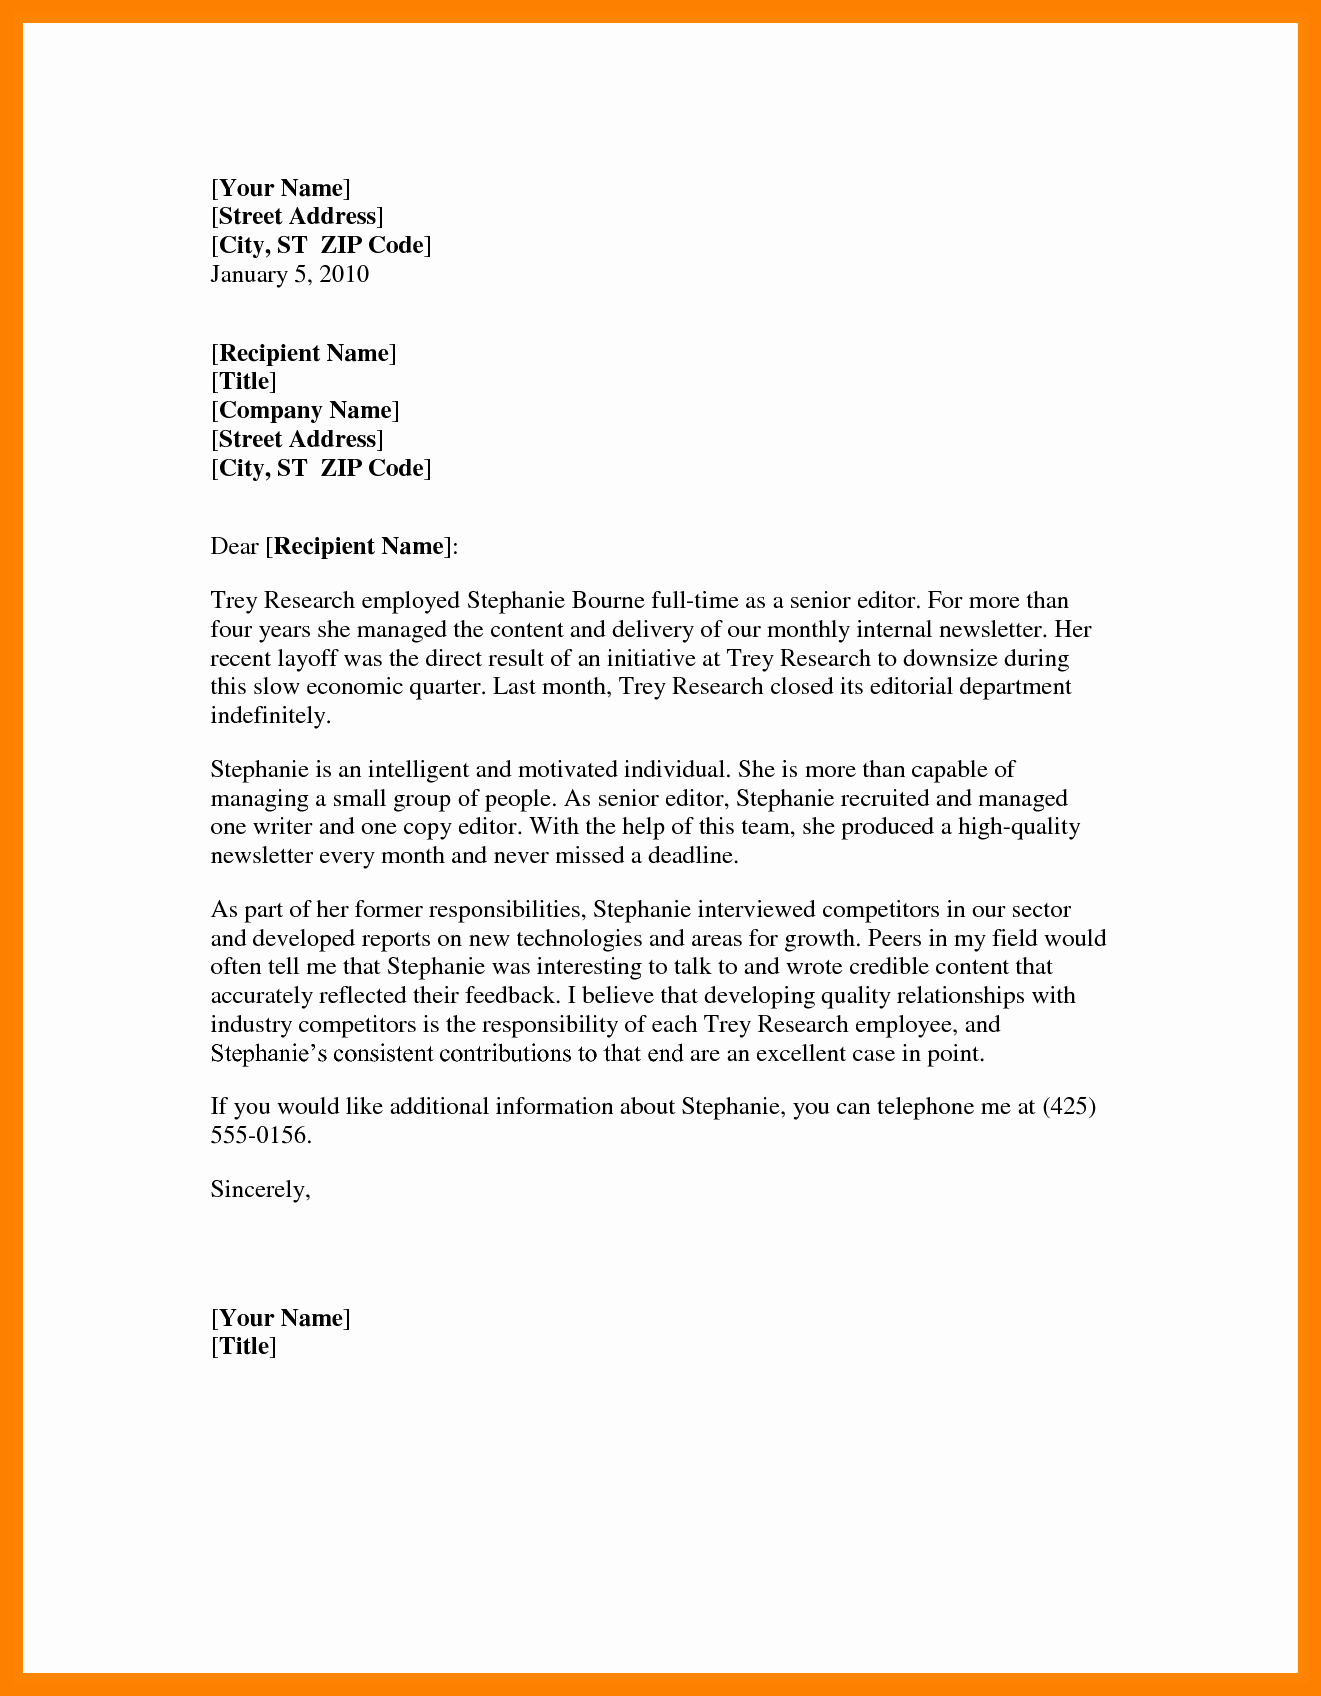 Formal Letter Of Recommendation Template Awesome Professional Letter Template